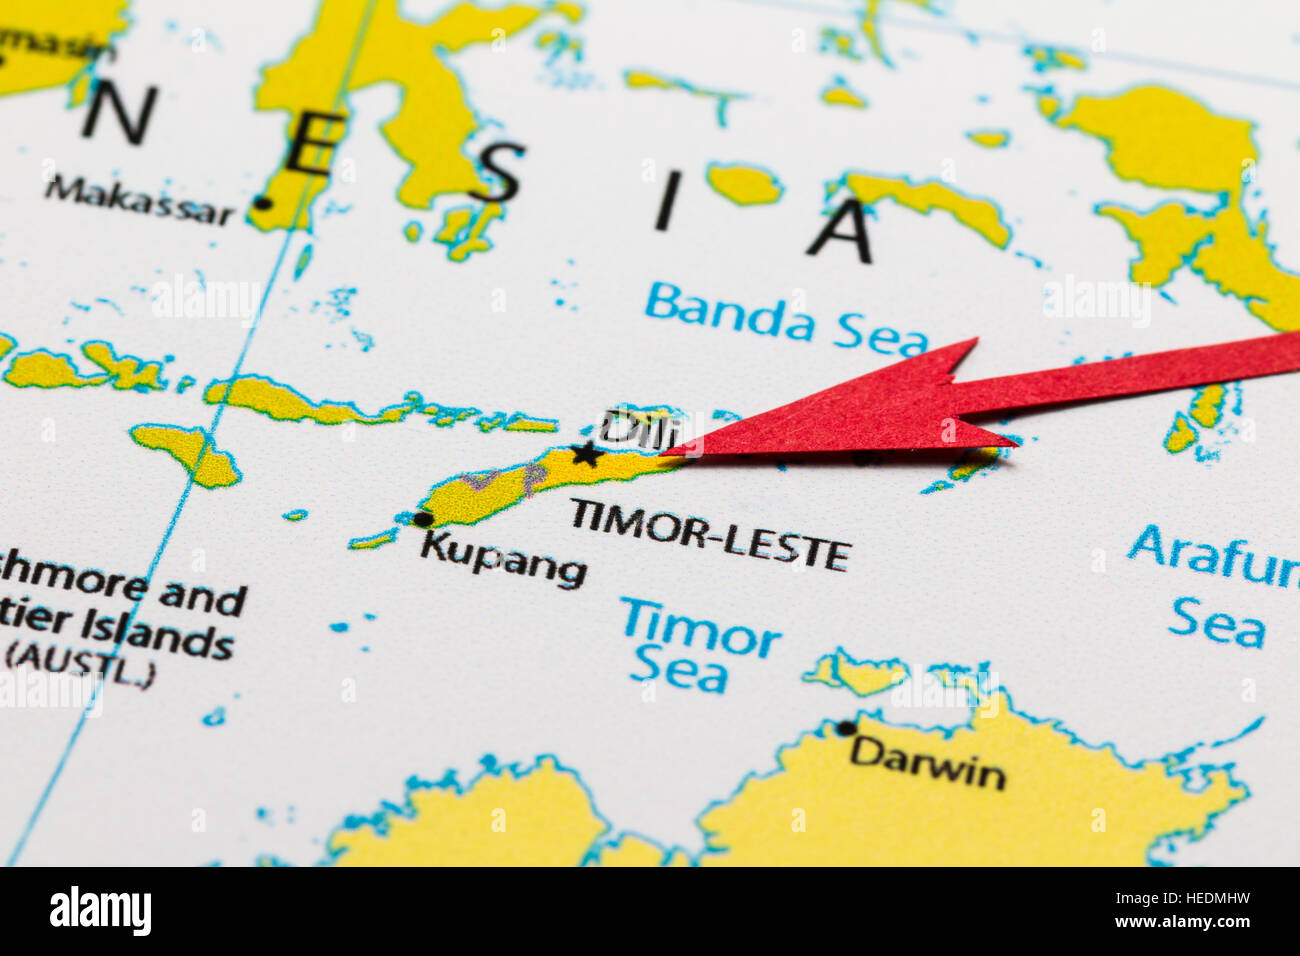 red arrow pointing timor leste islands on the map of asia continent